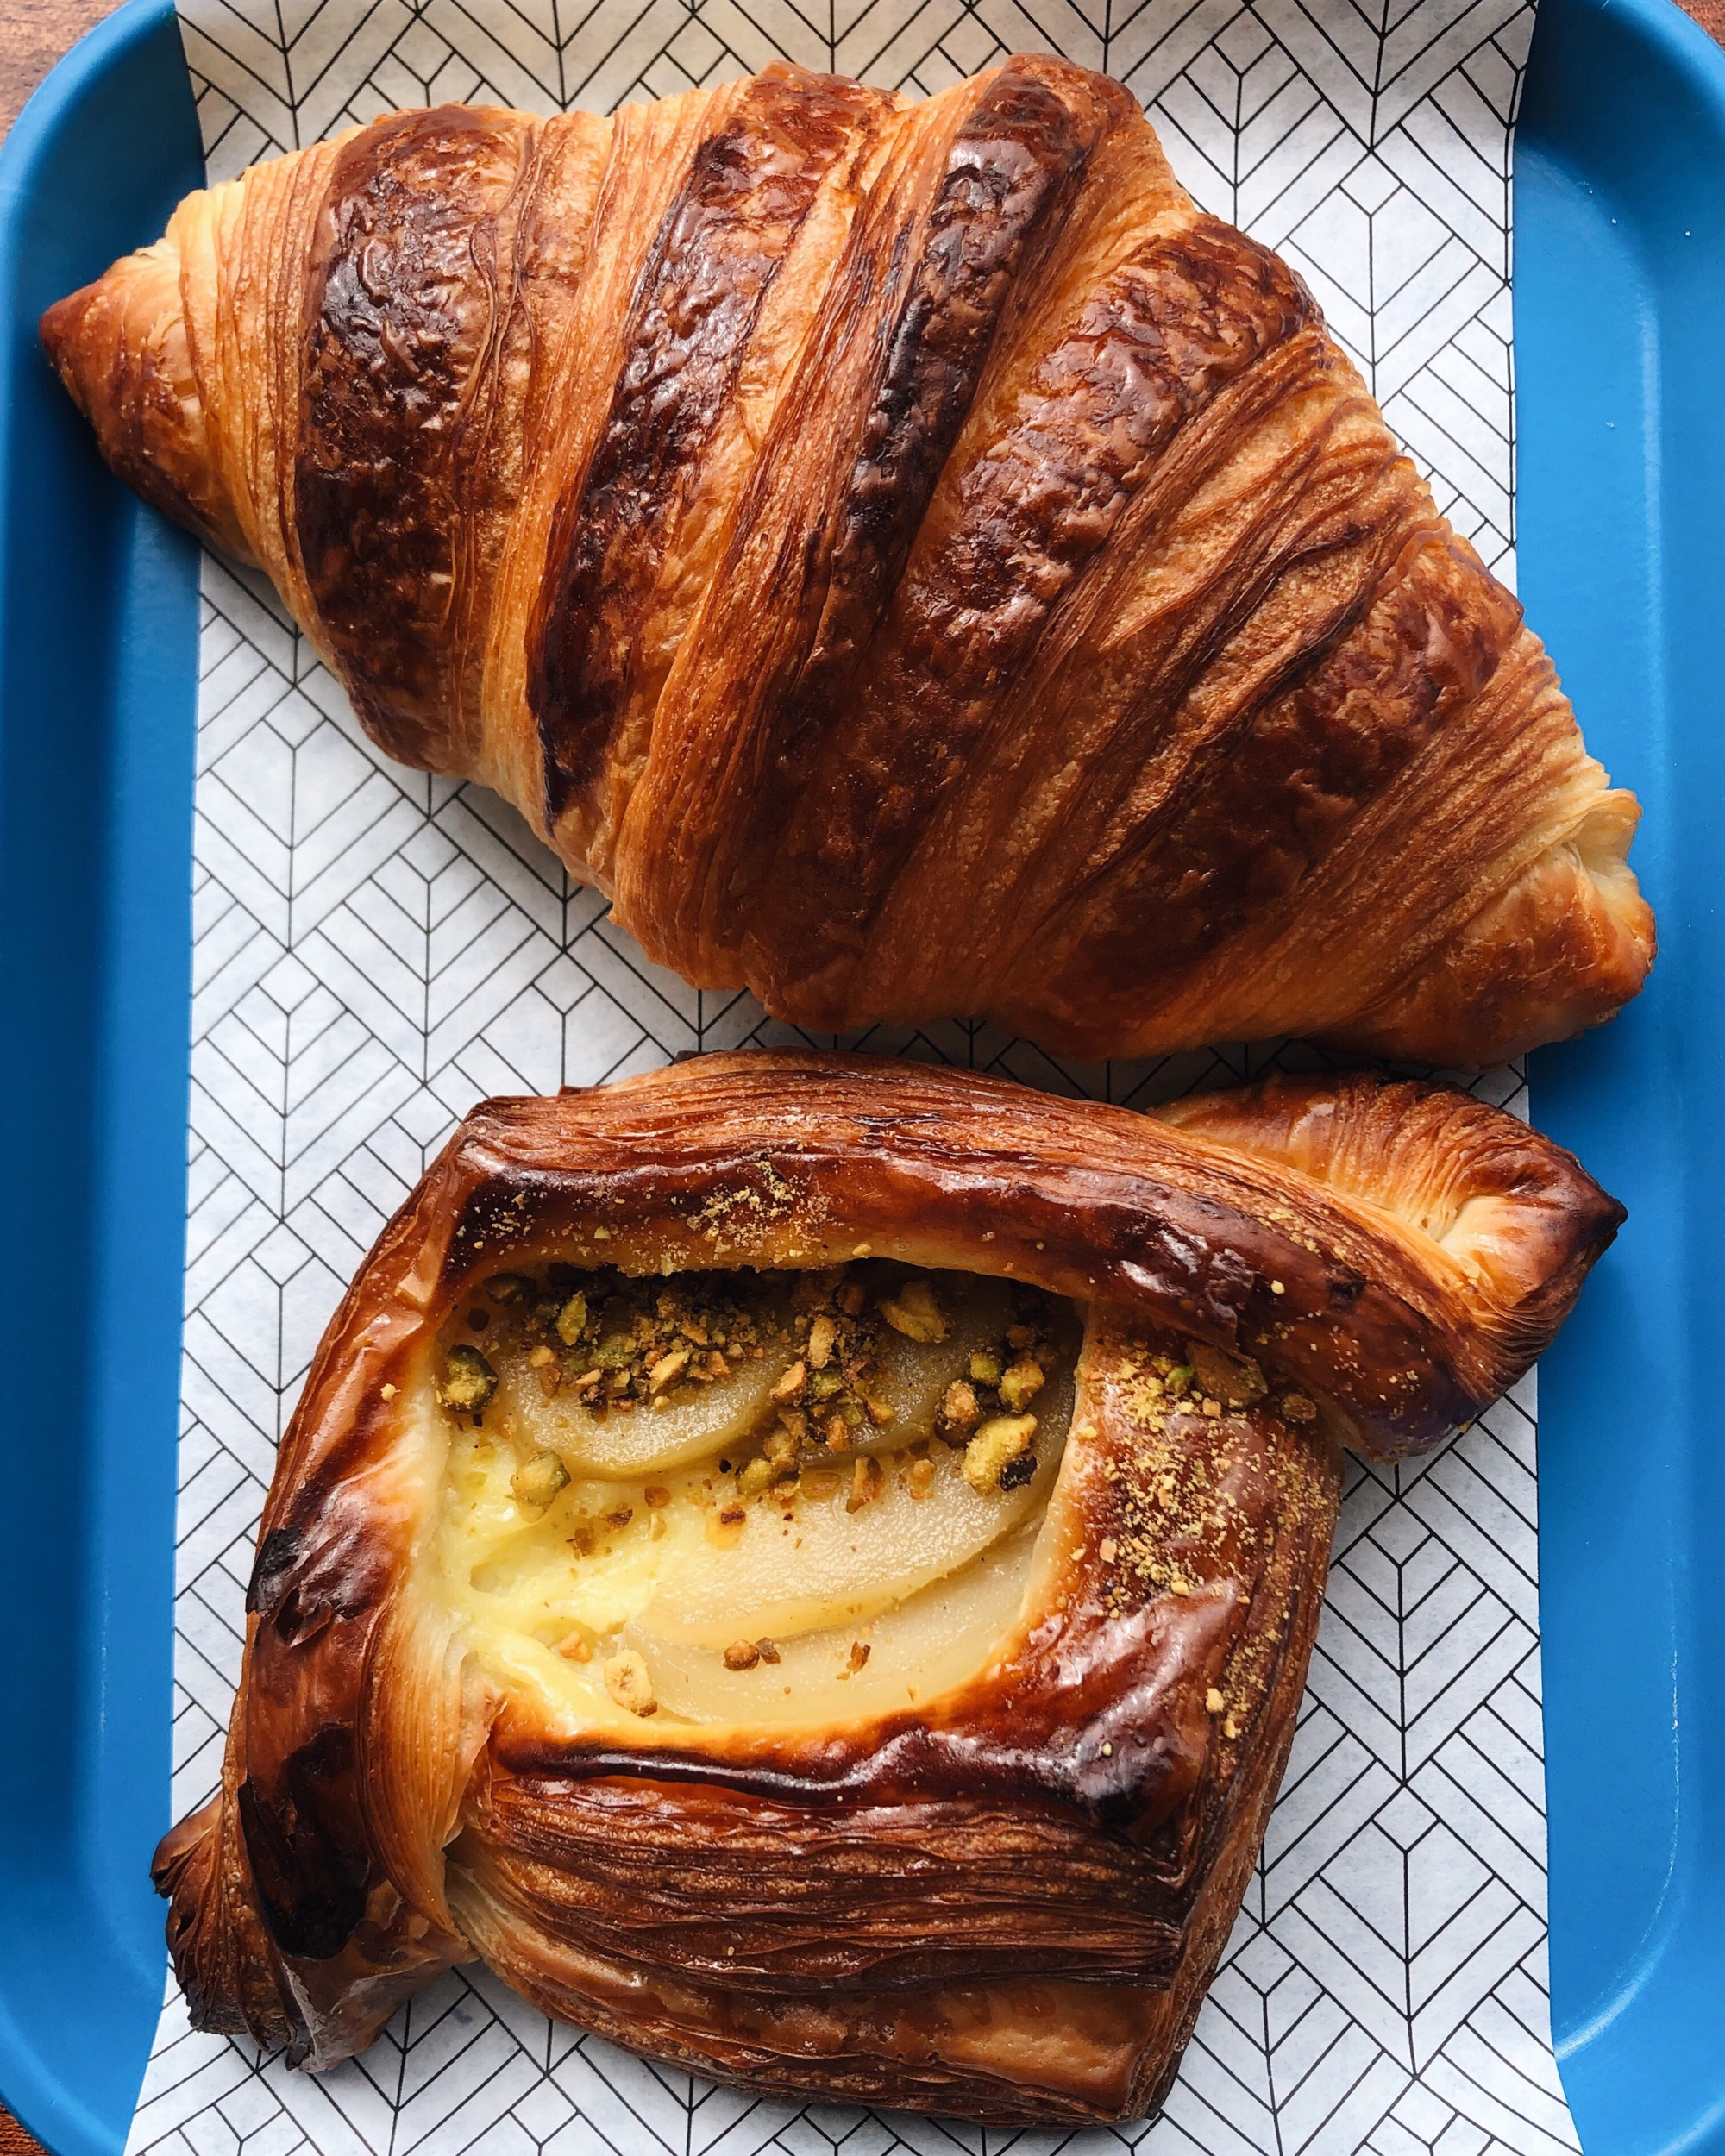 The most perfect croissant and a pear-pistachio danish at Belleville